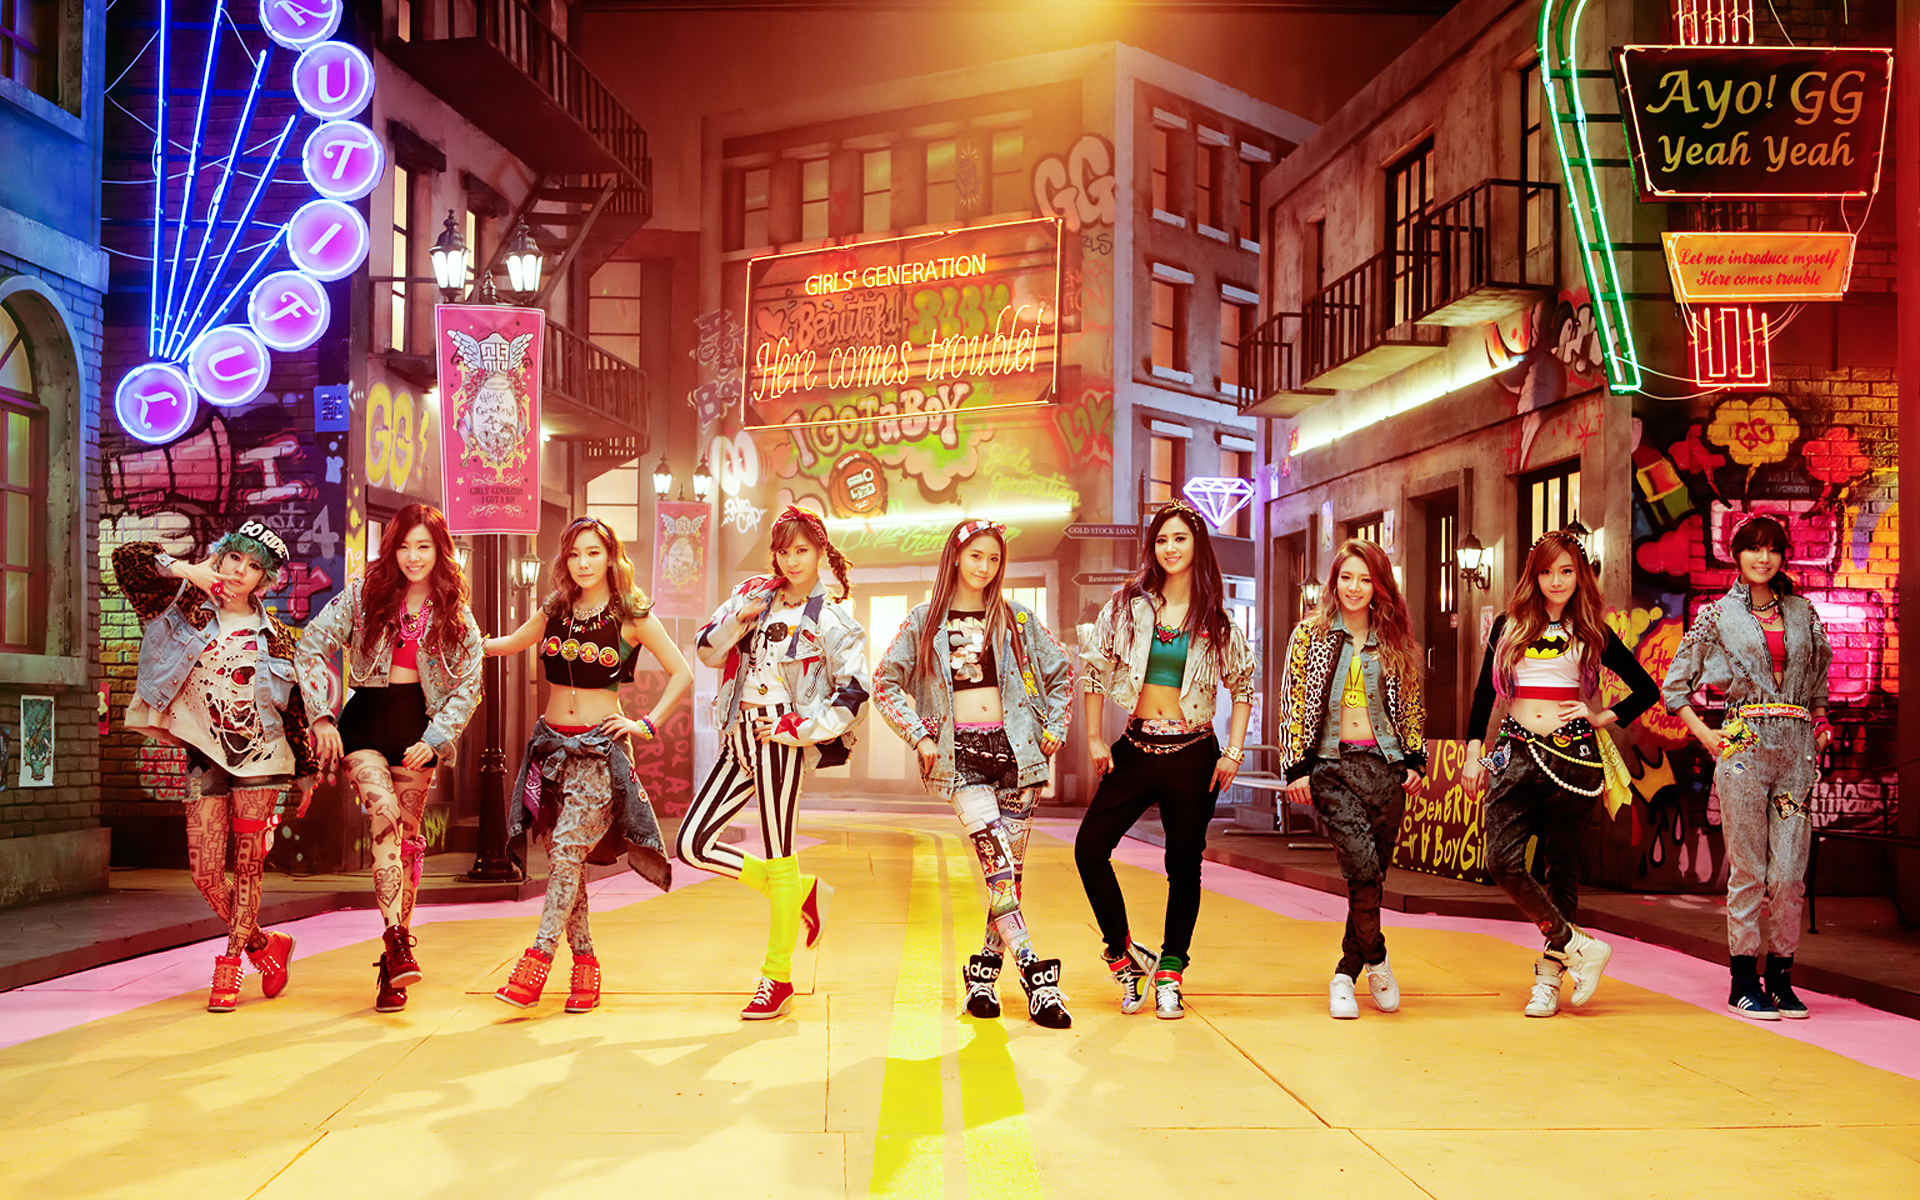 Update Girls Generation Releases I Got A Boy And Receives An All Kill On Korean Charts